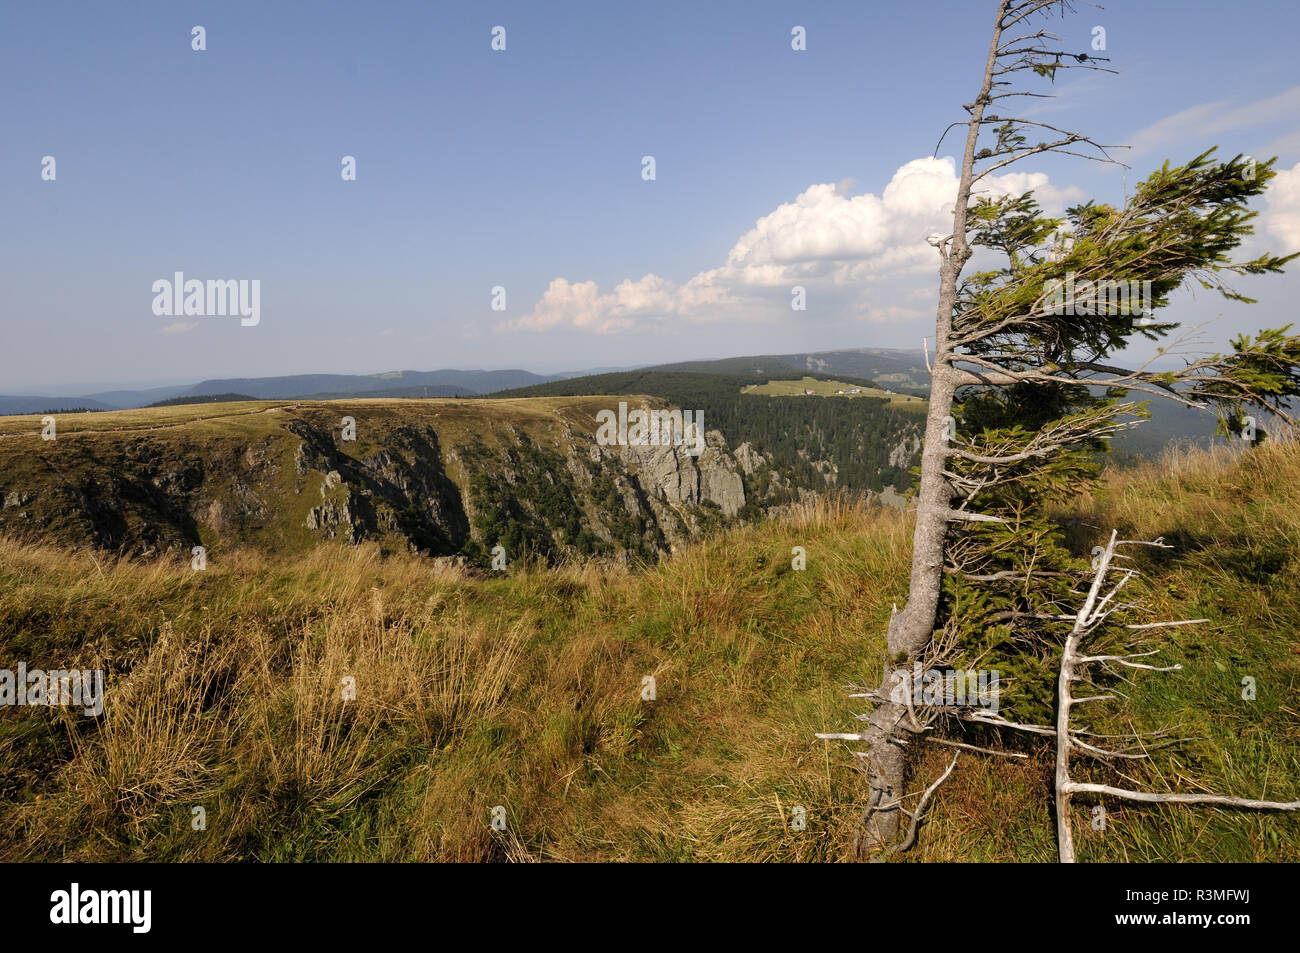 Silver fir (Abies alba) shaped by prevailing wind. View of the glacial cirque, the meadow of the Trois Fours, the Col du Falimont, the Hohneck, altitude 1200 m, Hautes Vosges, Haut Rhin, France - Stock Image